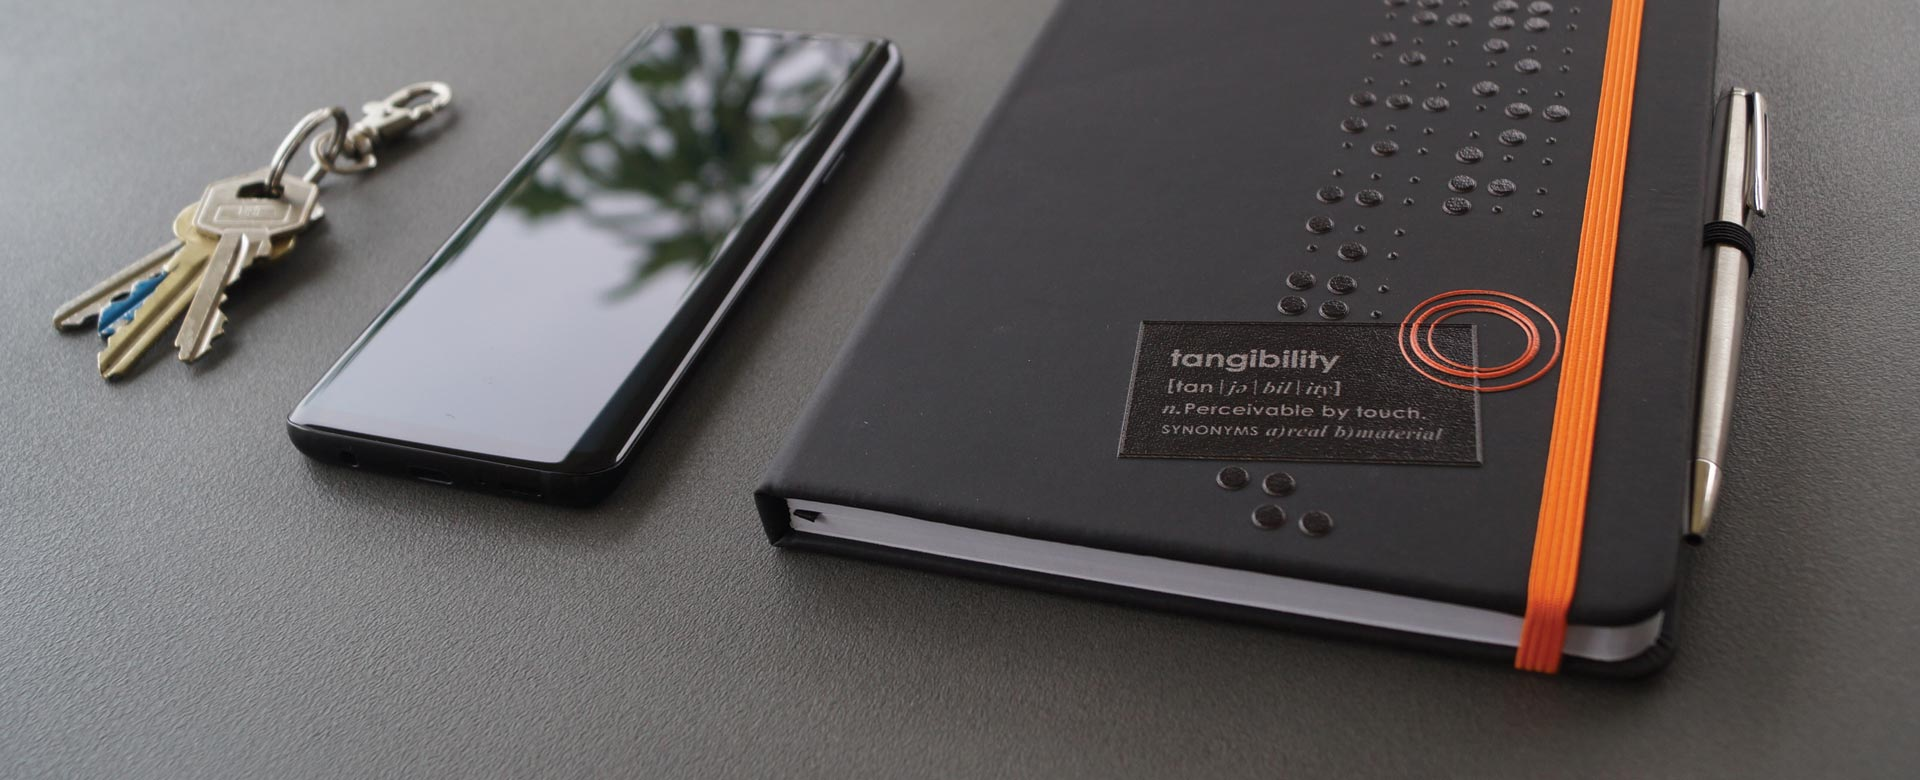 Tangibility-PERCEIVED-BY-TOUCH